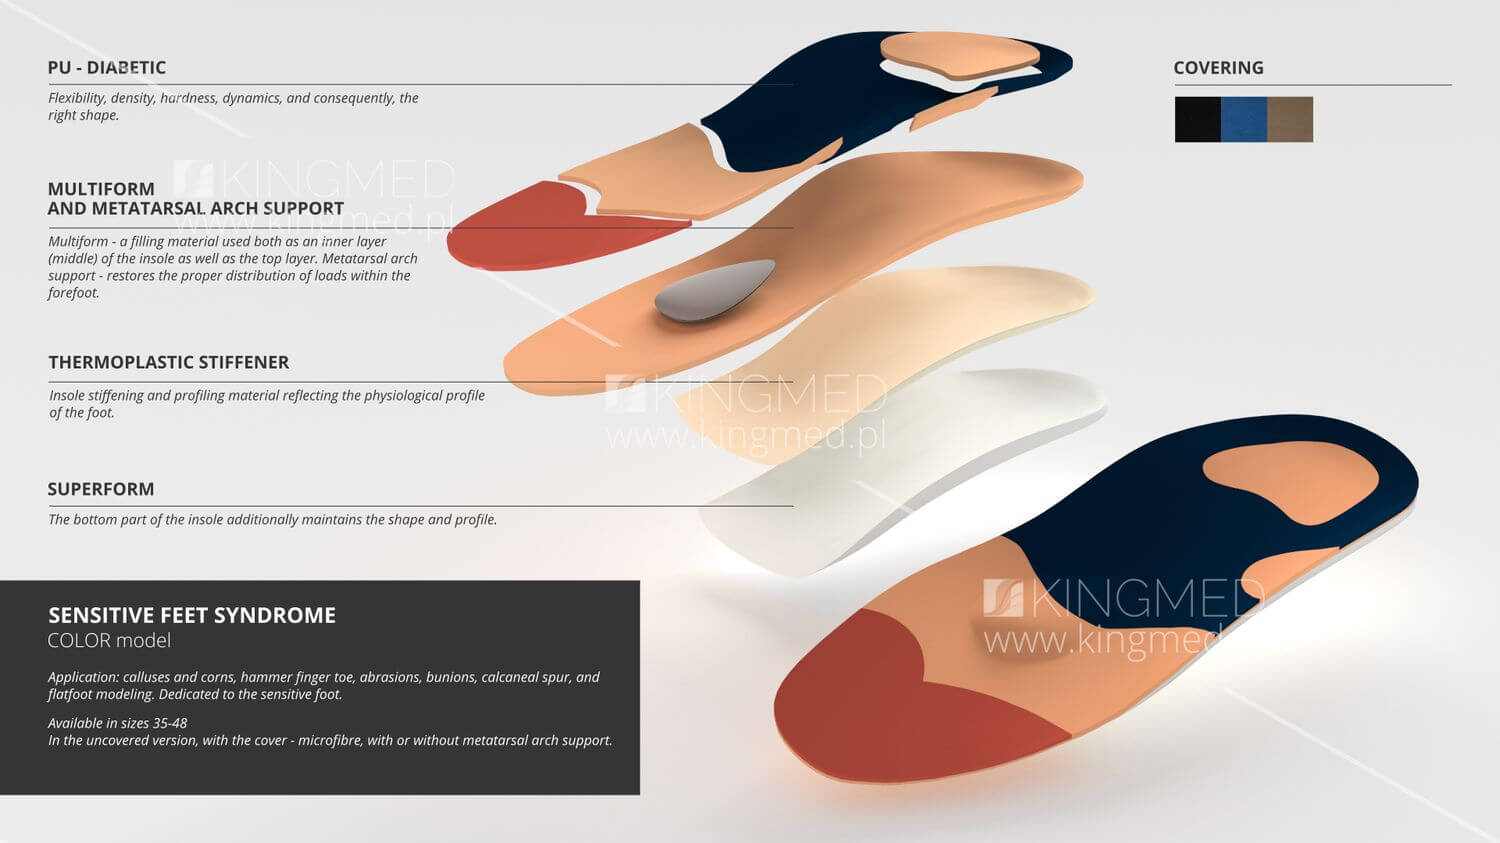 Orthopedic insoles sensitive feet syndrome color model